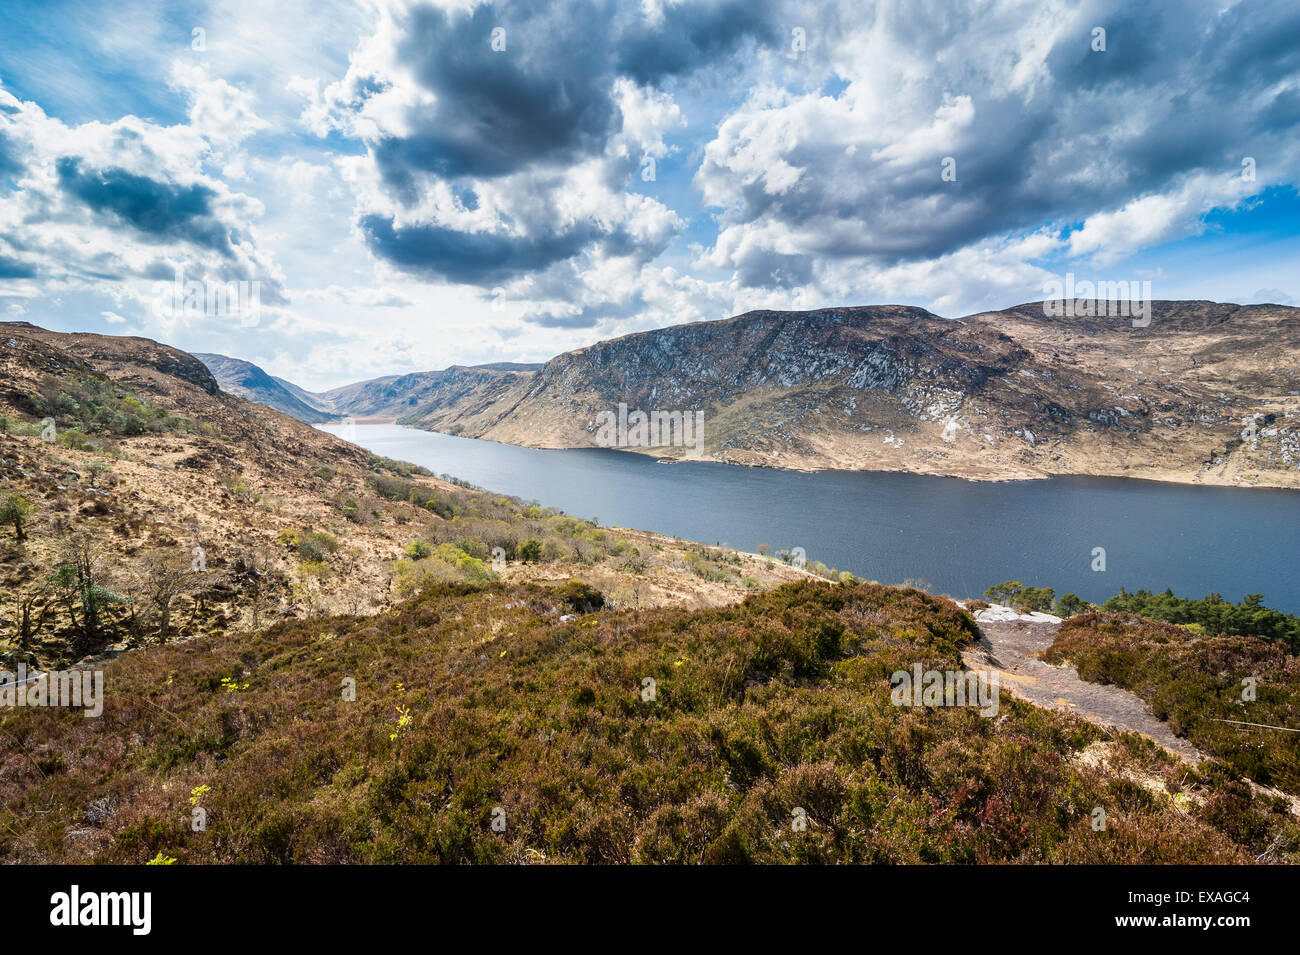 Glenveagh National Park, County Donegal, Ulster, Republic of Ireland, Europe - Stock Image